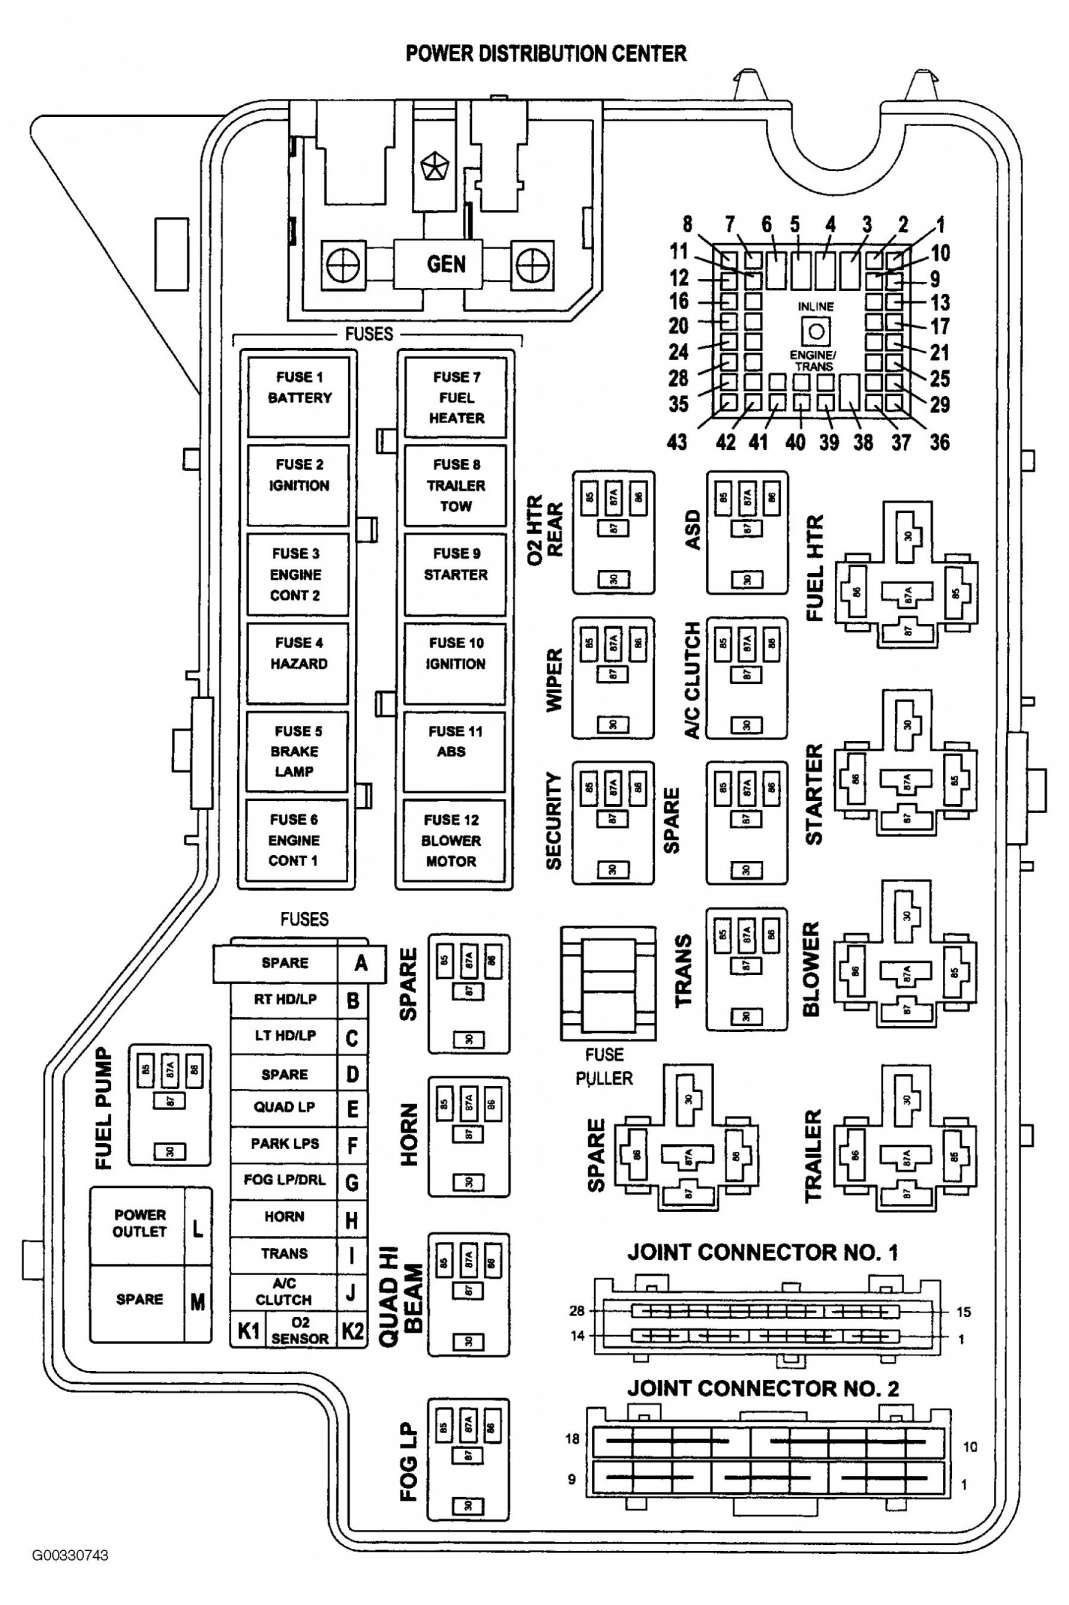 2003 Dodge Ram 1500 Fuse Box Diagram Wiring Diagram Alternator F Alternator F Sposamiora It